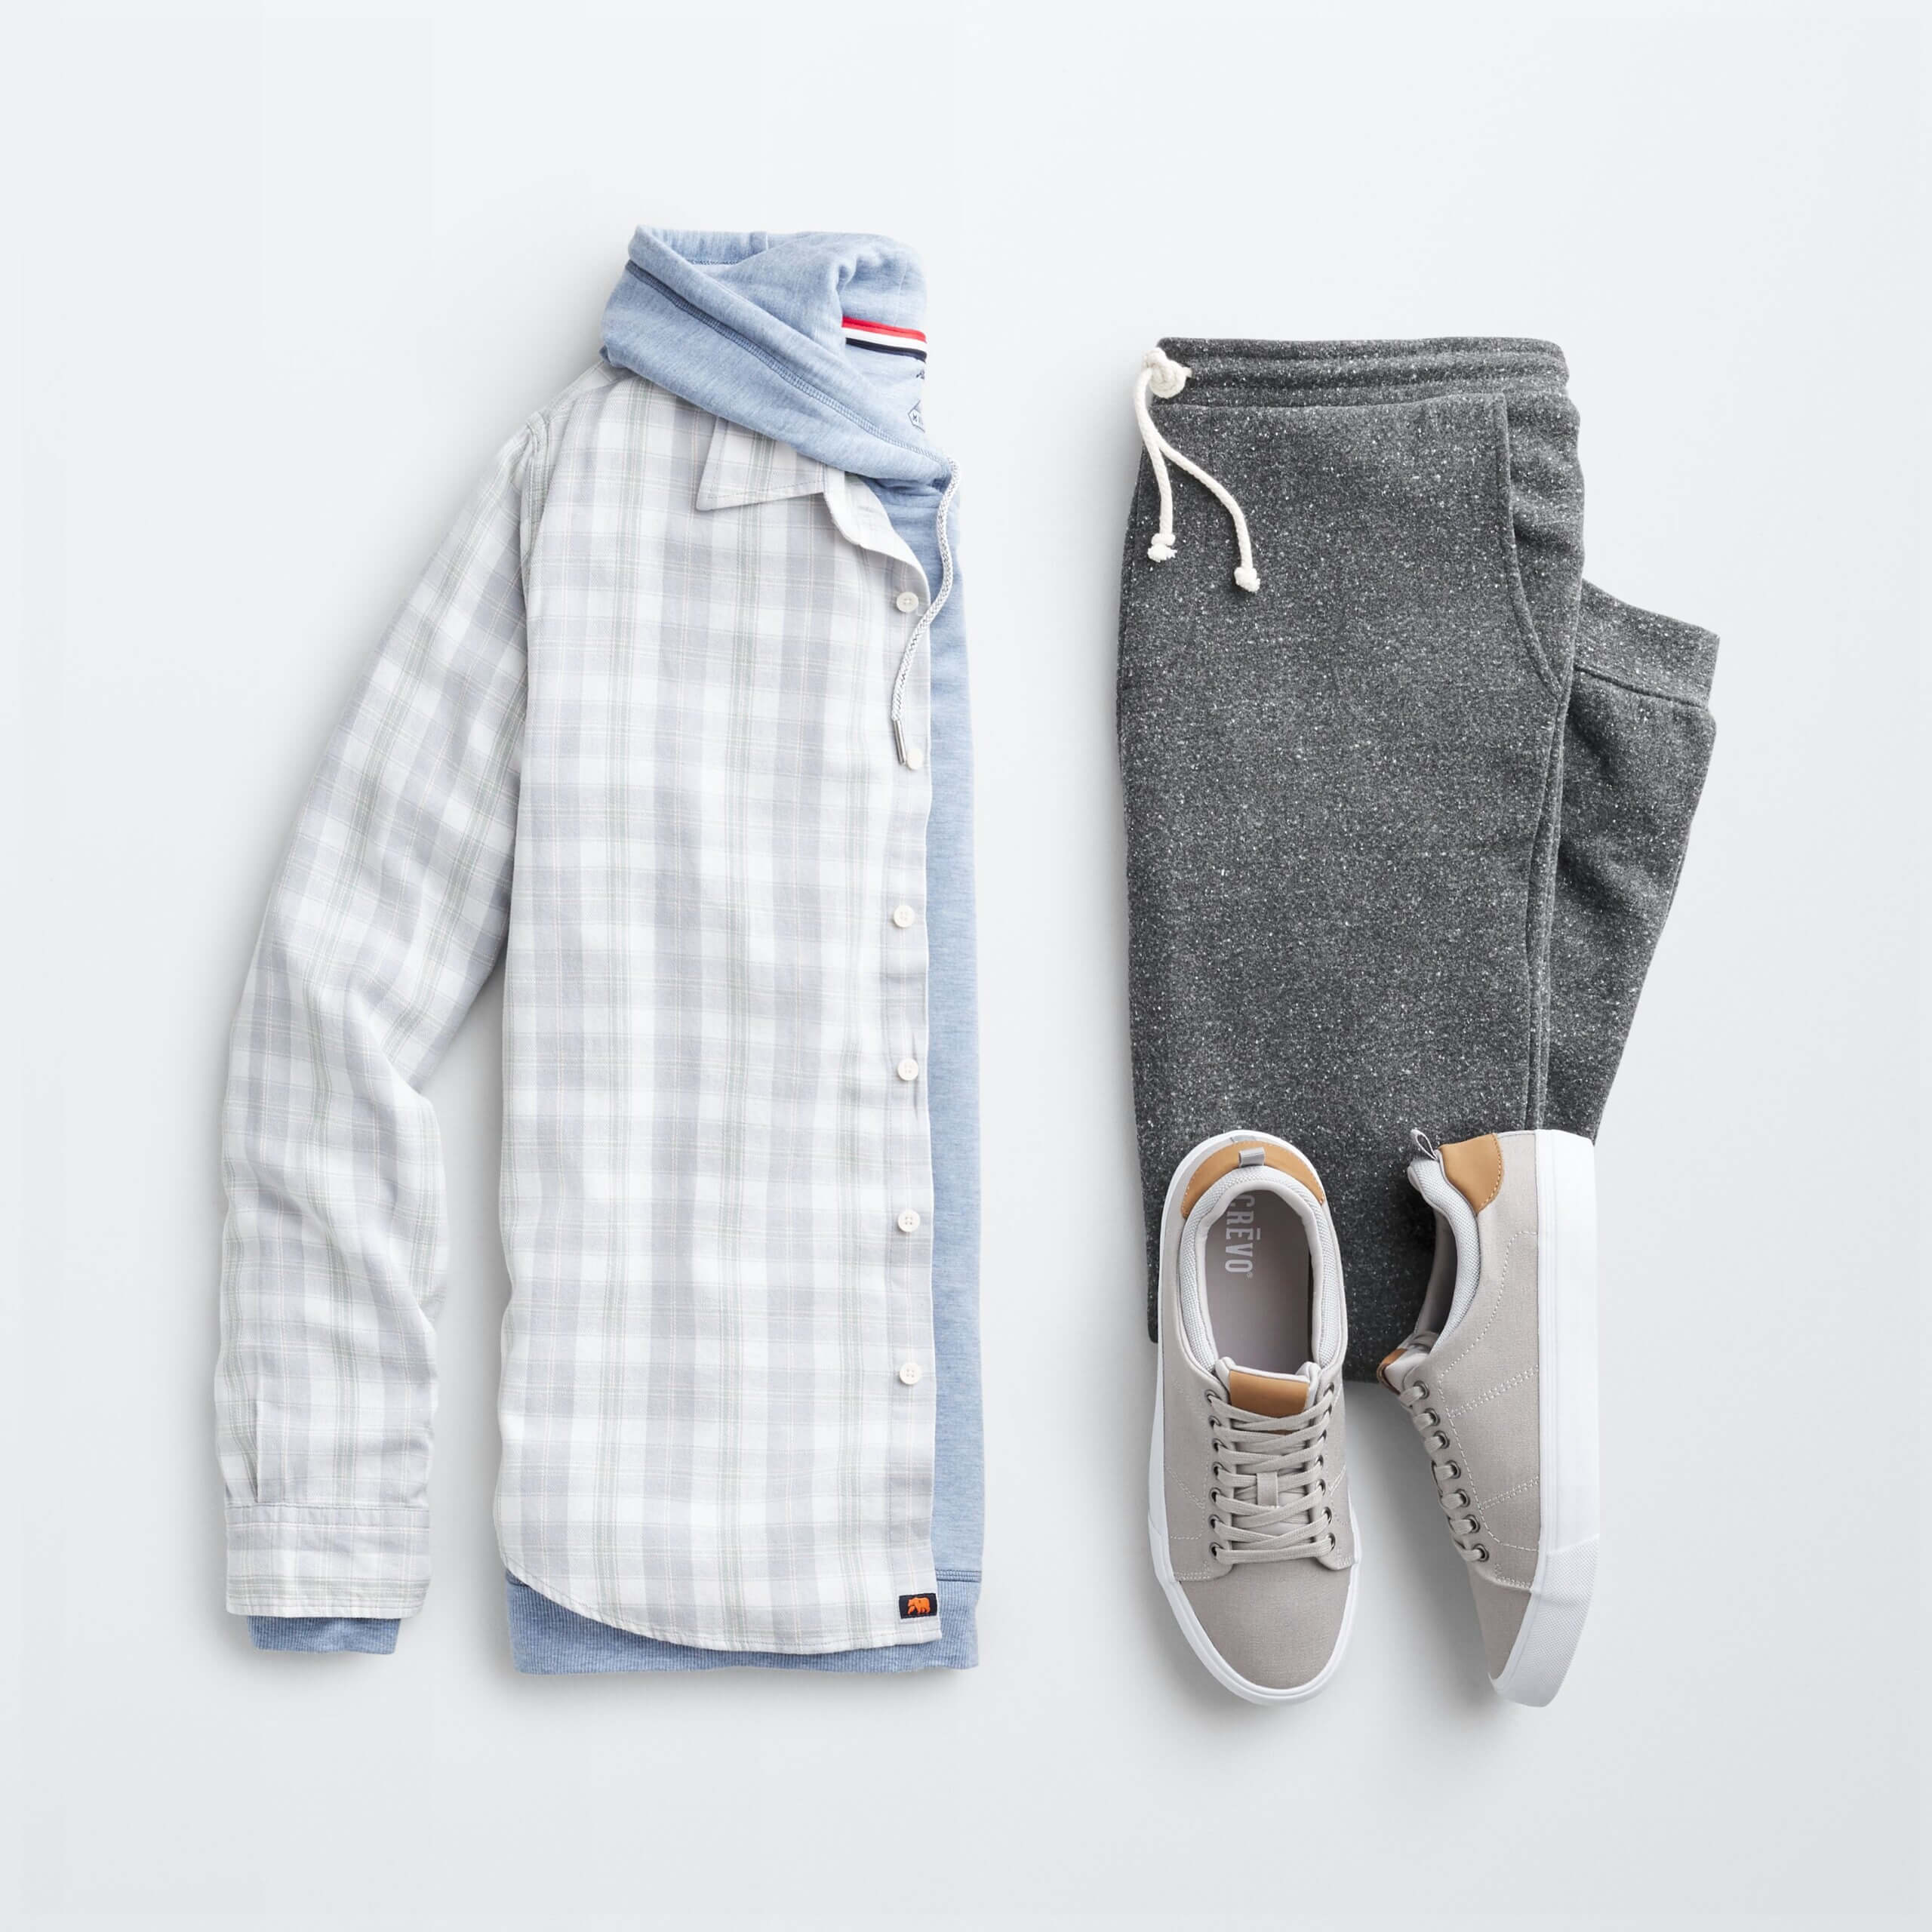 Stitch Fix Men's shacket outfit with blue and white plaid shacket, blue hooded sweatshirt, gray jogger pants, gray sneakers.